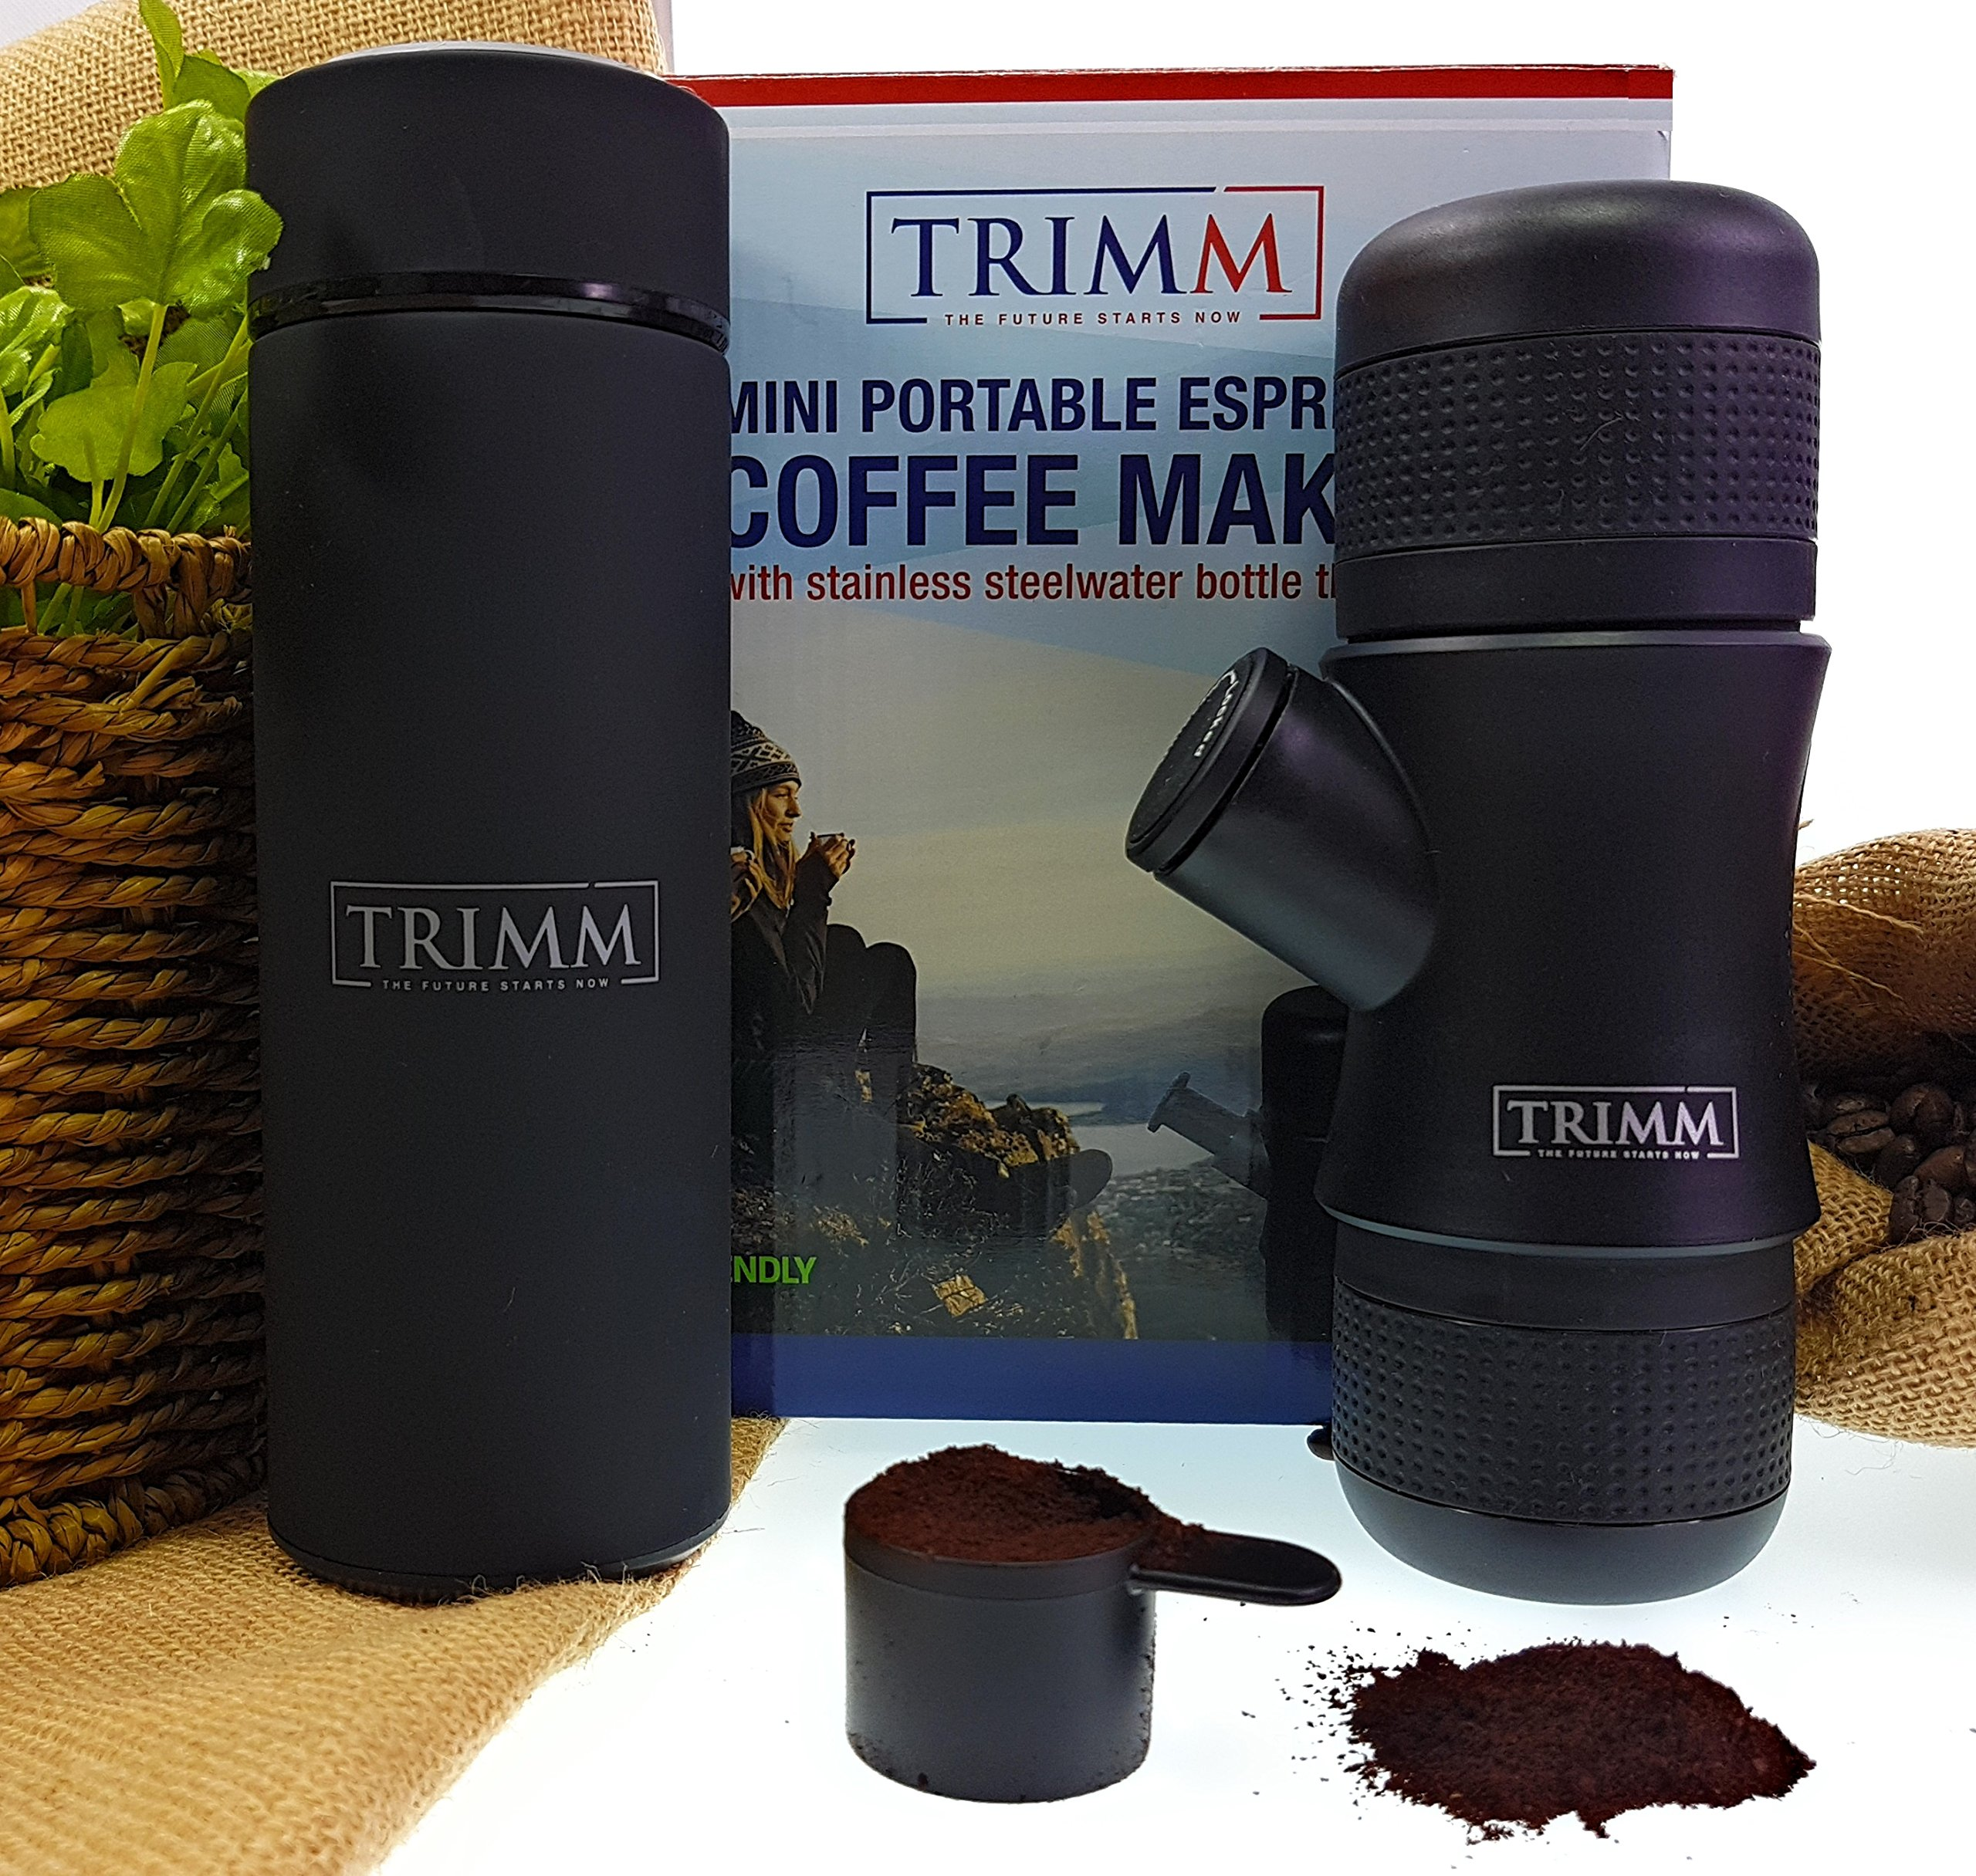 Trimm Portable Hand Held Espresso Machine and Thermos Vacuum Insulated Double Wall | Portable Espresso Maker and Flask | Single Cup Coffee Maker and Tea Thermos Bottle | Travel Set Great Gift Idea by TRIMM THE FUTURE STARTS NOW (Image #4)